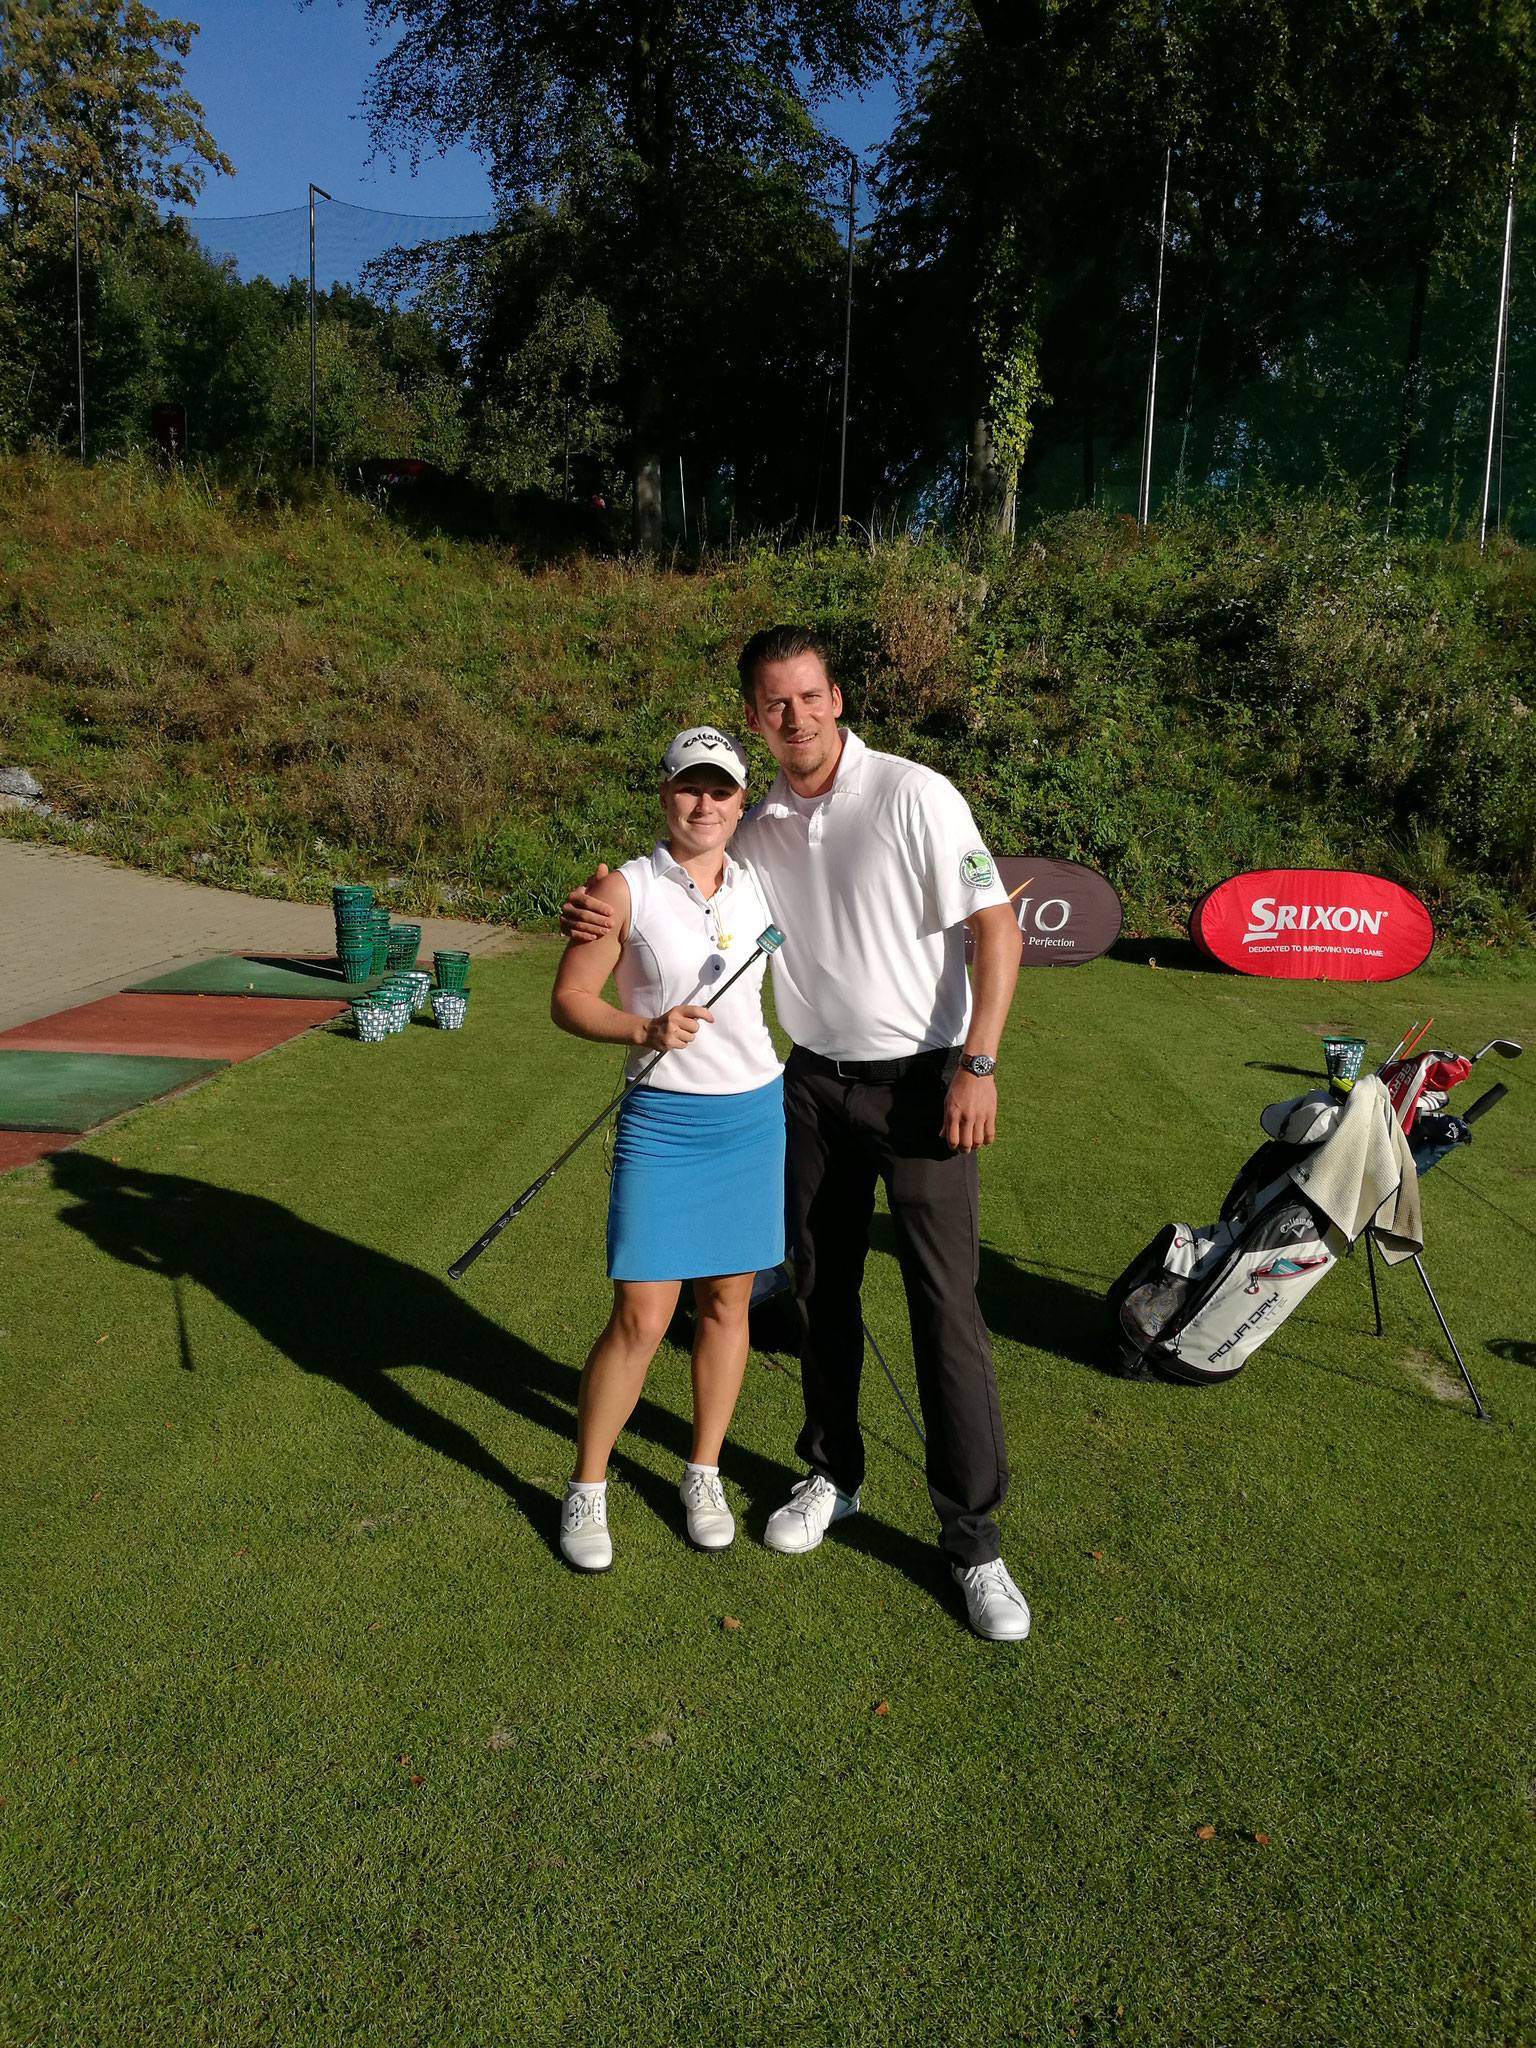 Natalie Wille, Ladies European Tour Player